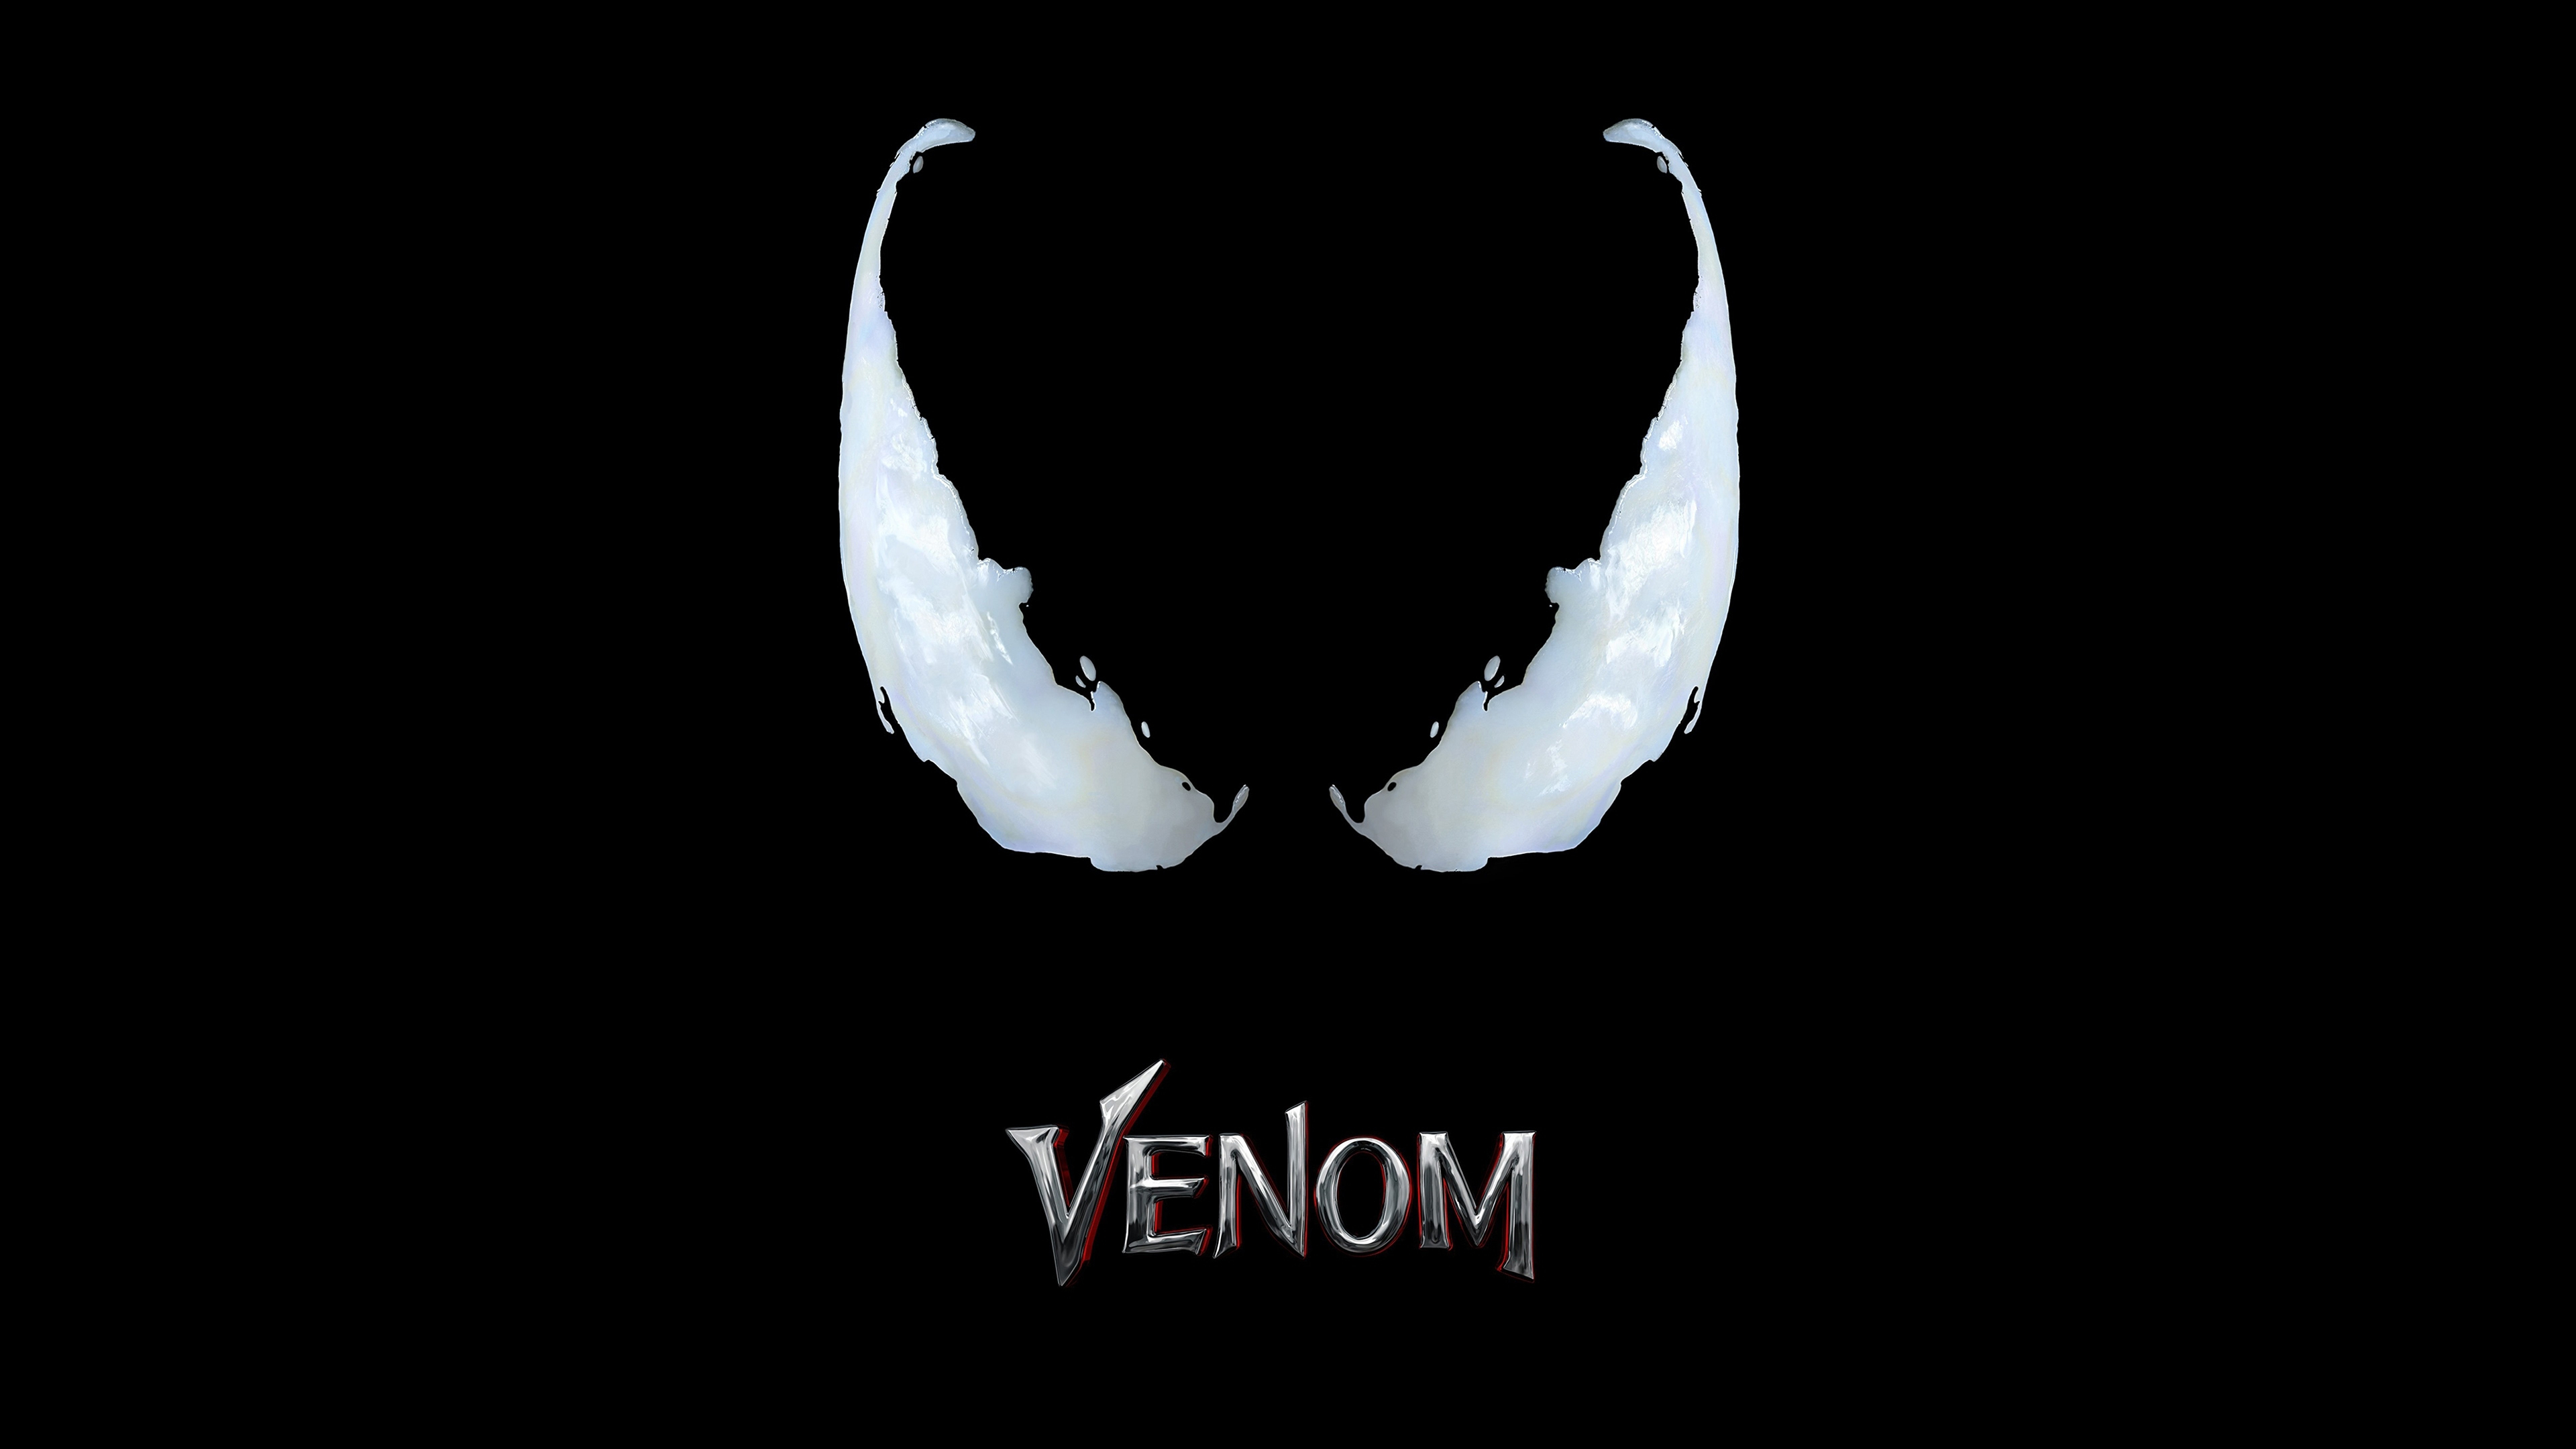 Venom Chromebook Wallpaper .